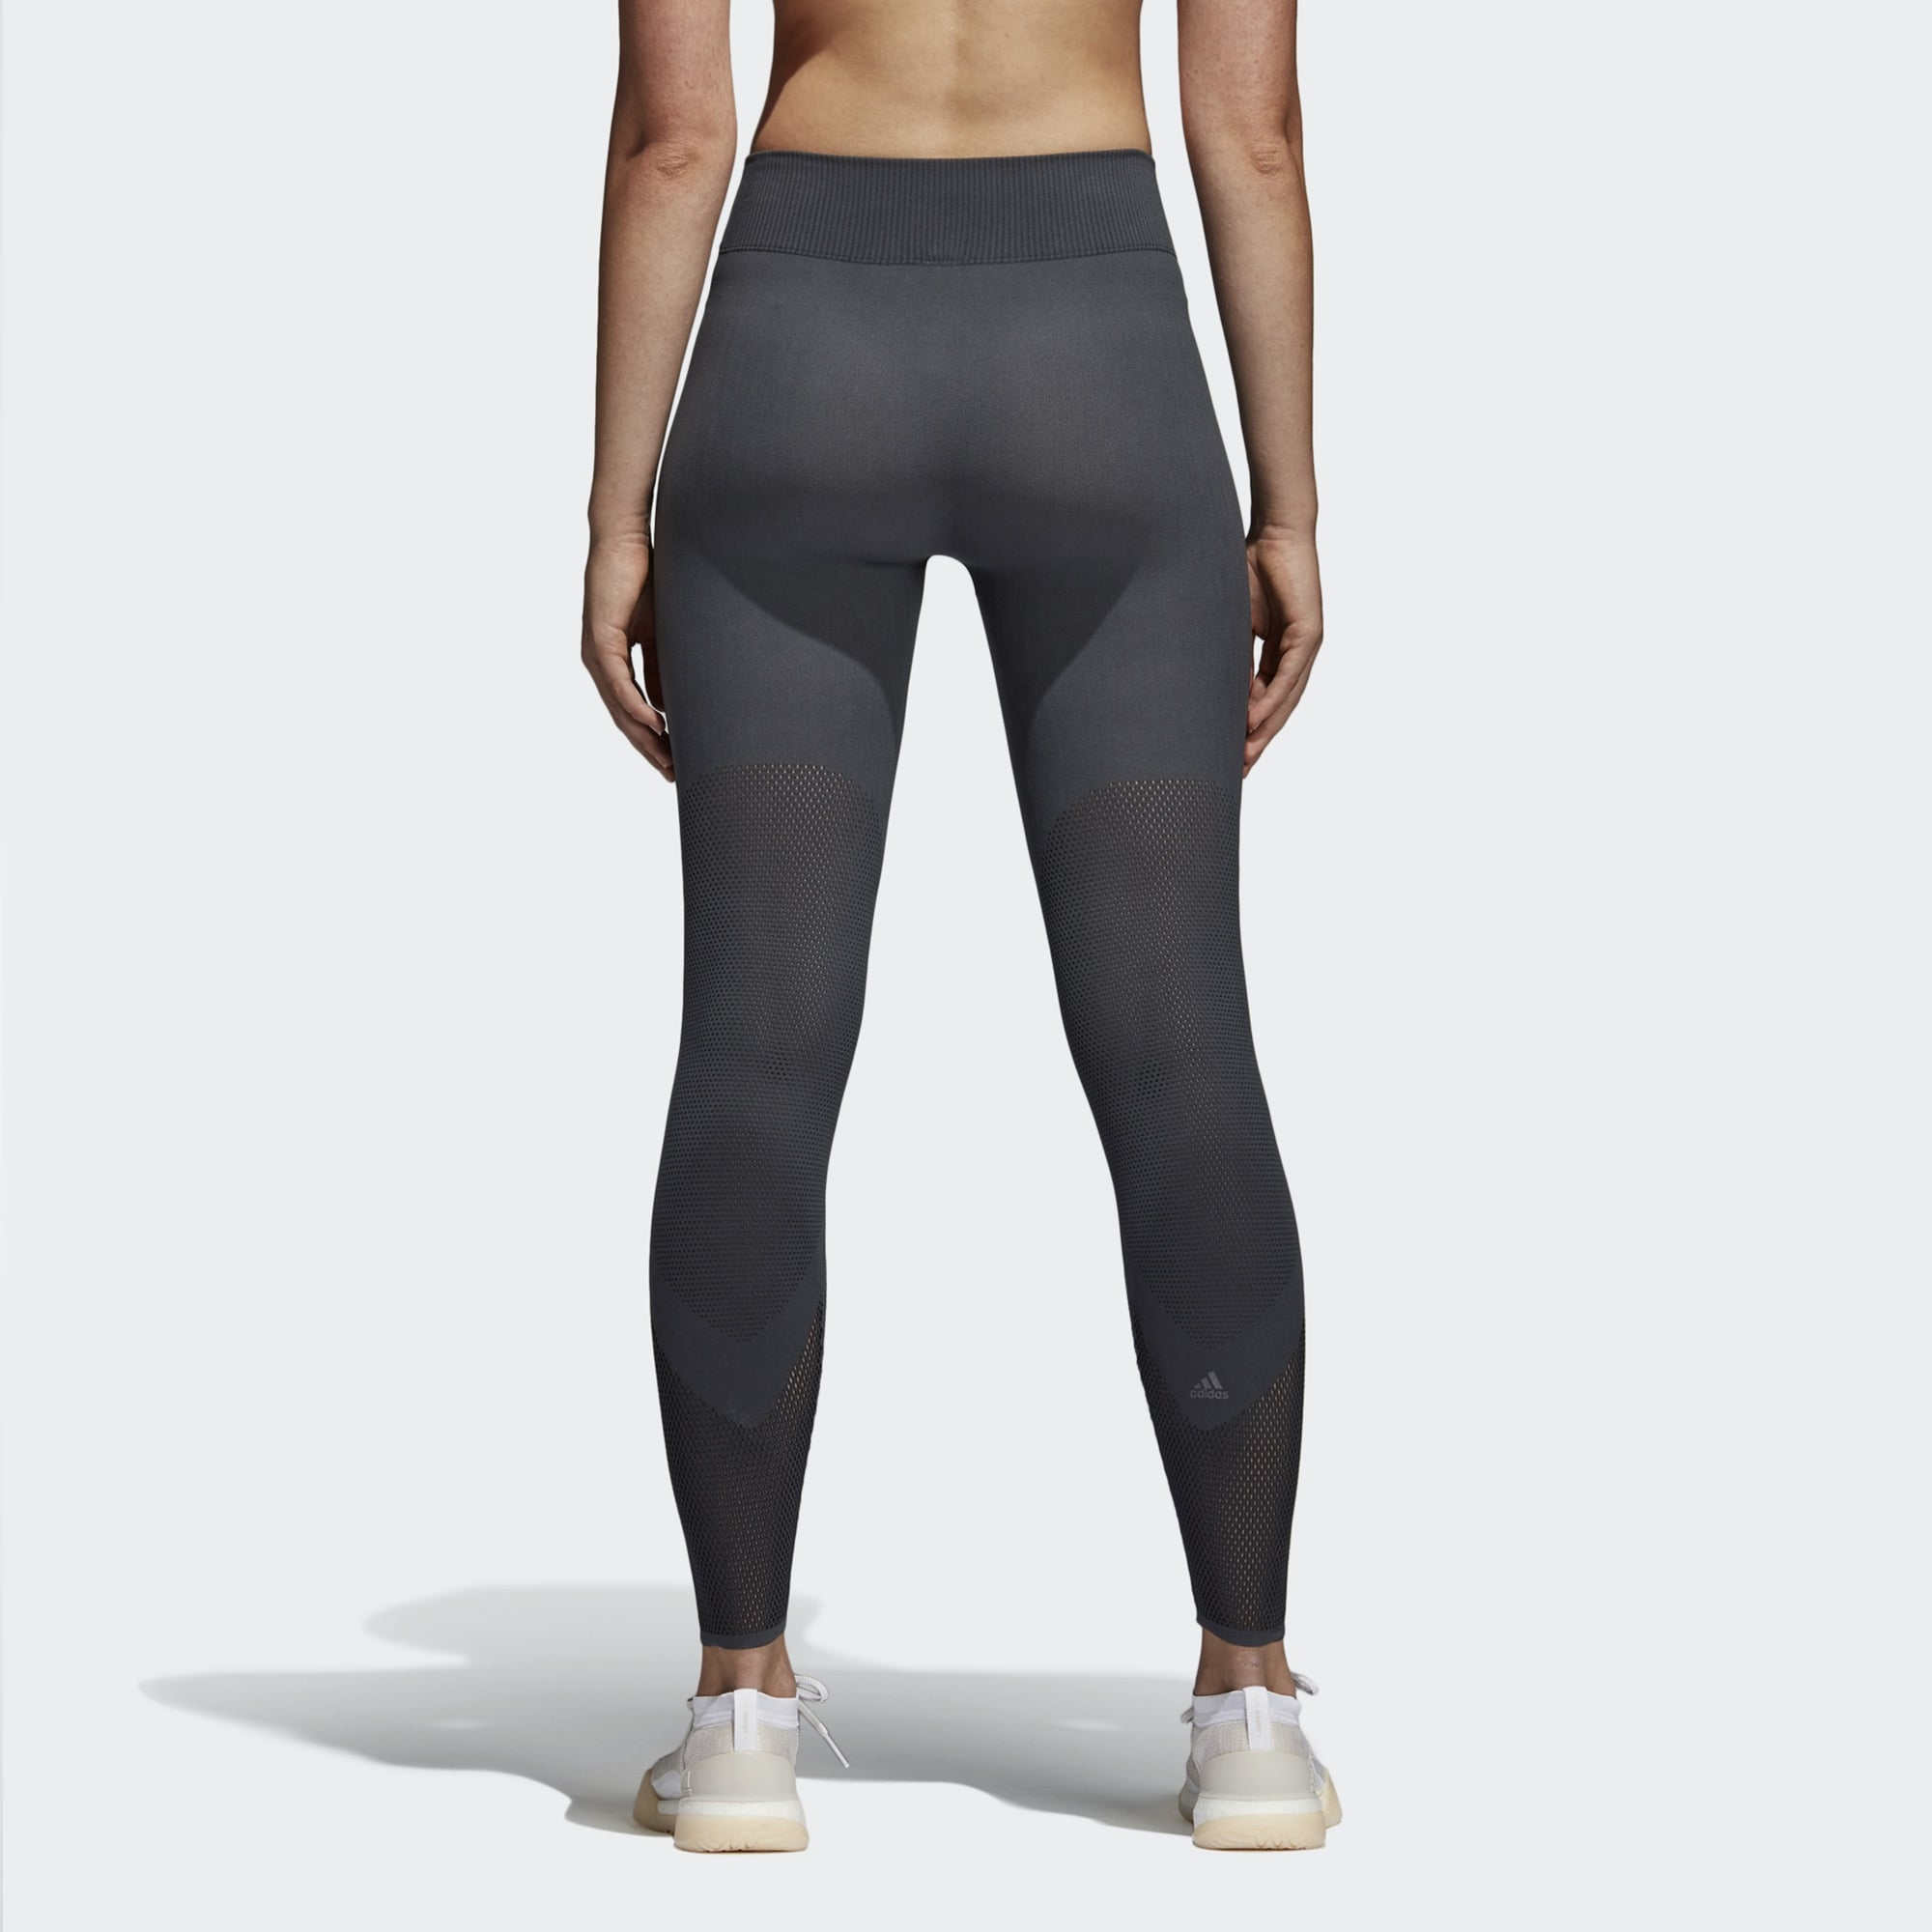 adidas legging womens